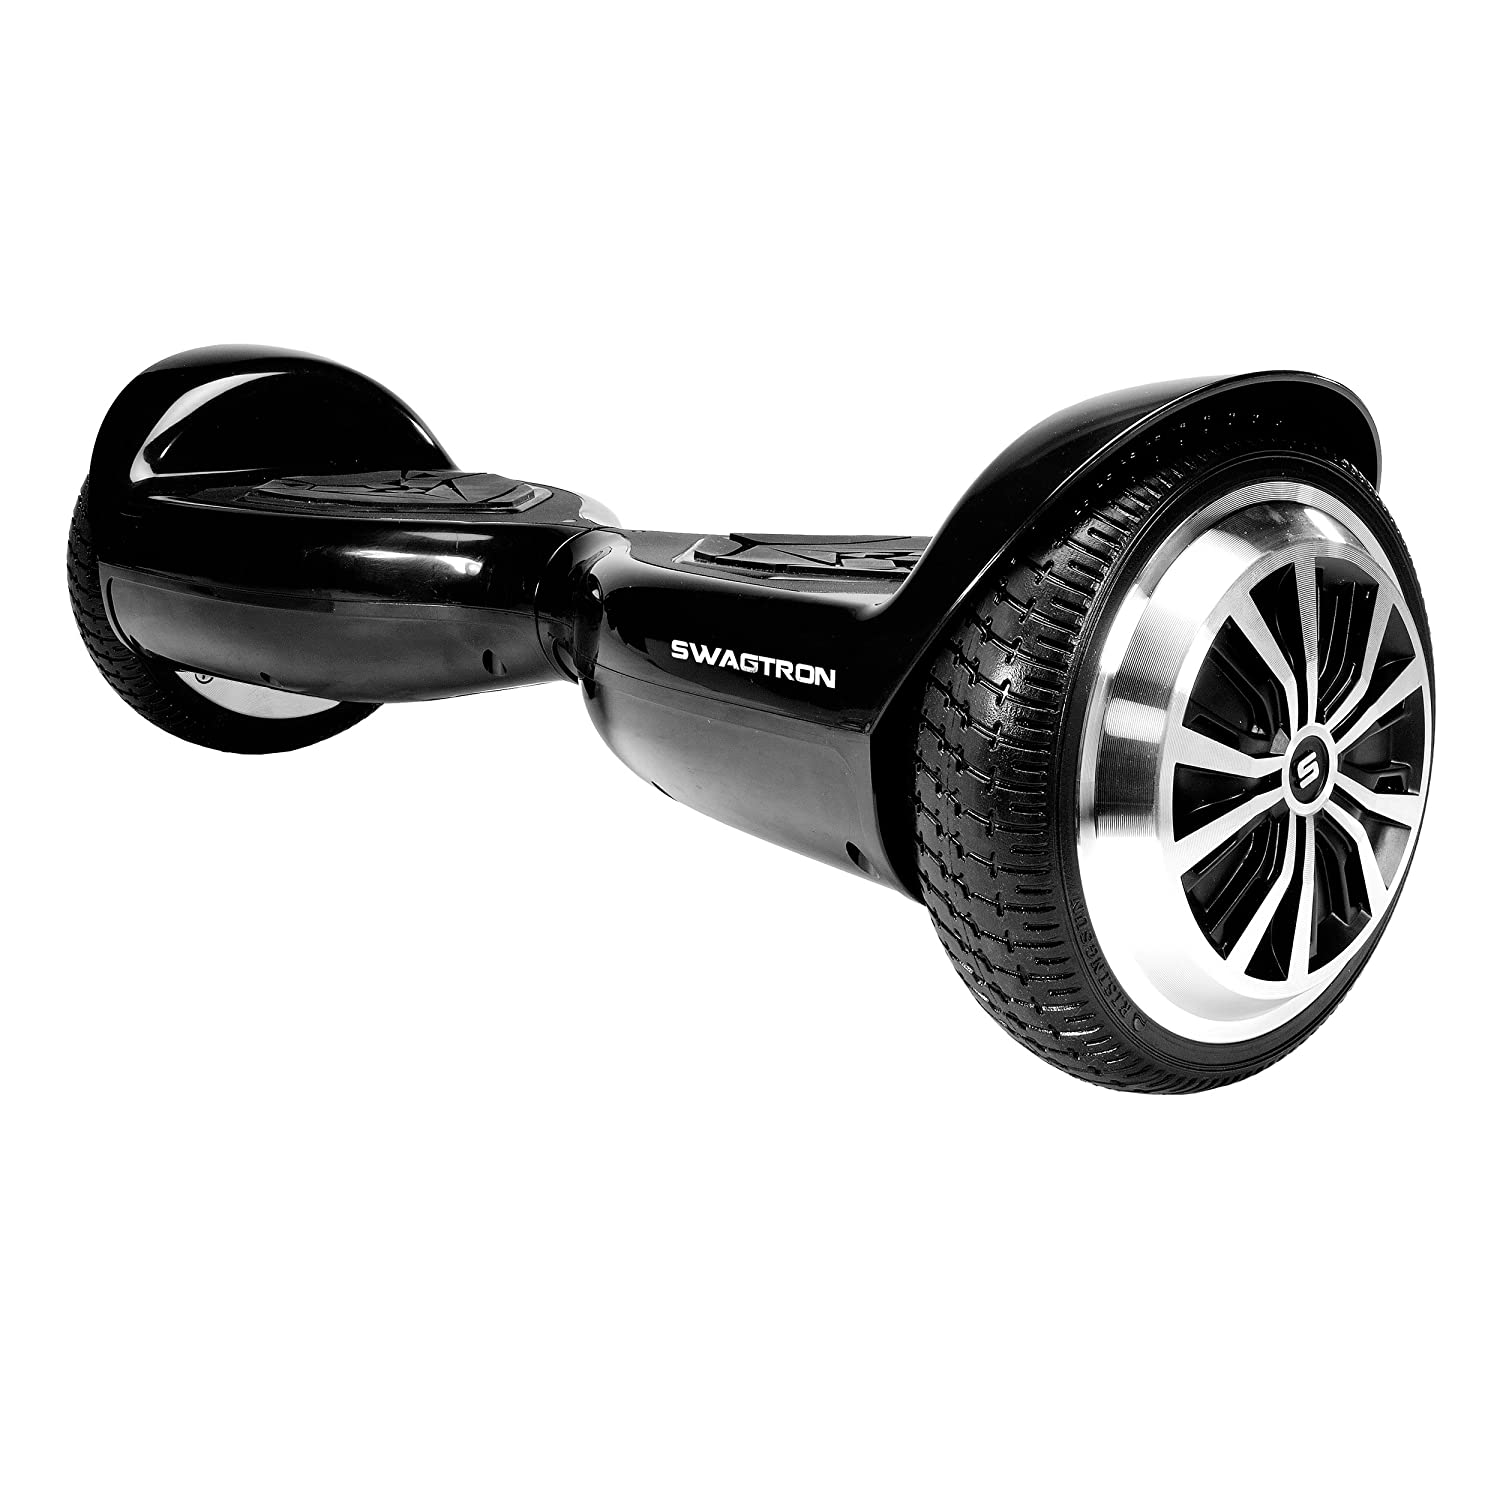 Amazon.com: Swagtron T5 Entry Level Hoverboard for Kids and Young Adults;  Optional Learning Mode (Black): Sports & Outdoors